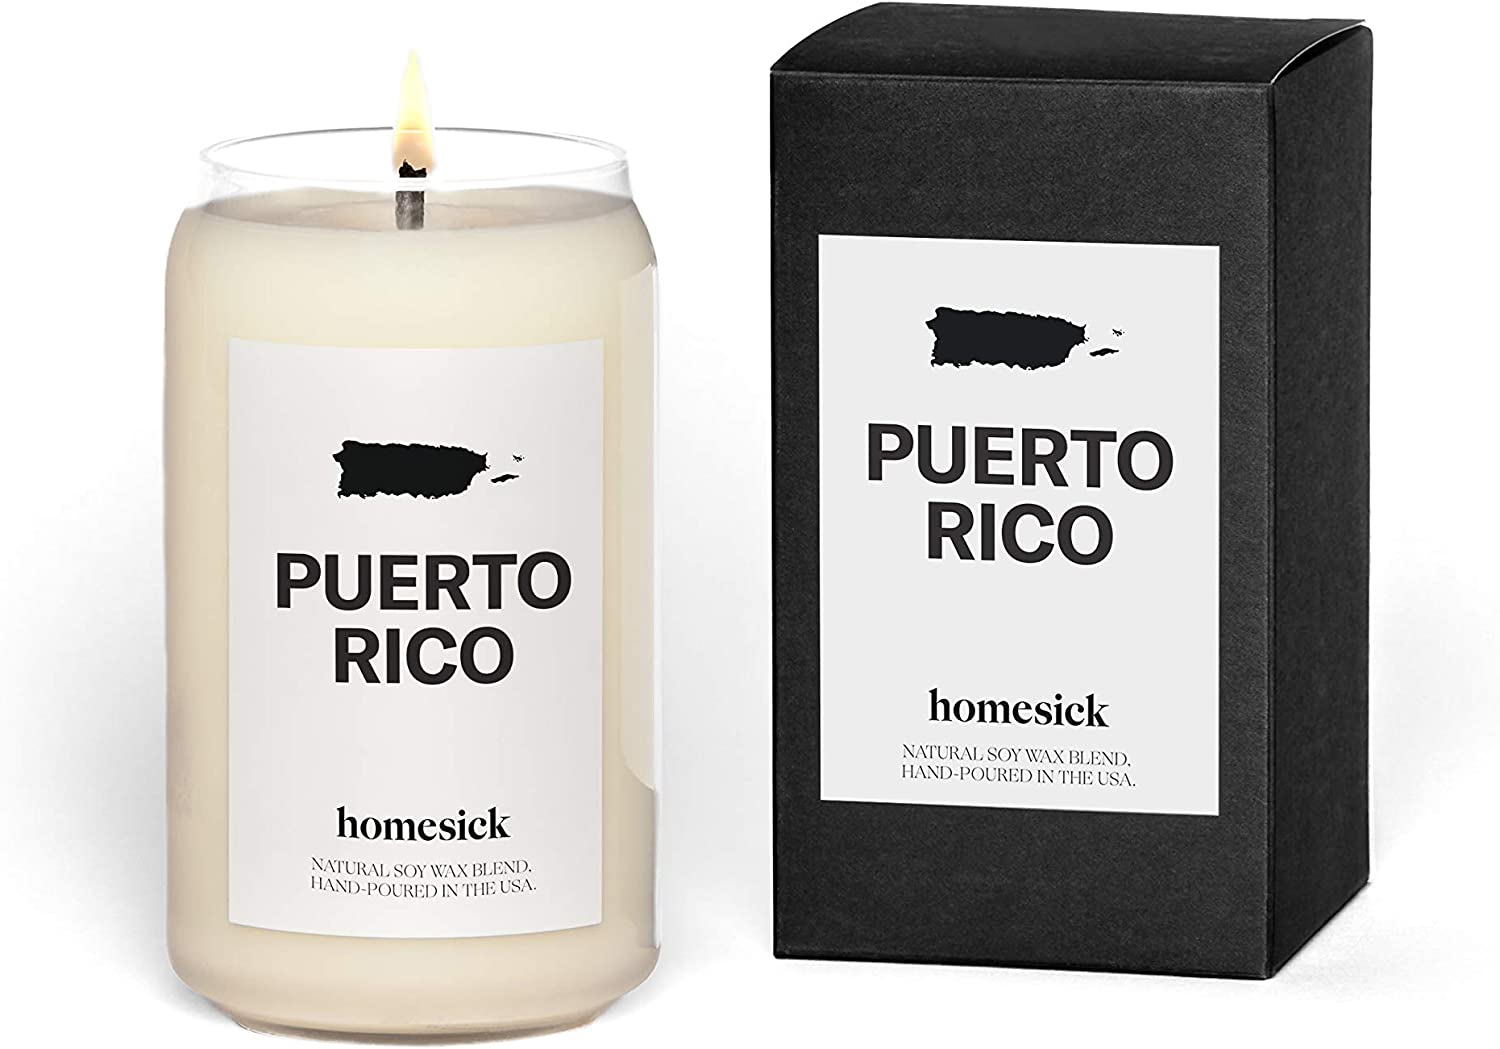 Homesick Scented Candle, Puerto Rico (2020 Version)